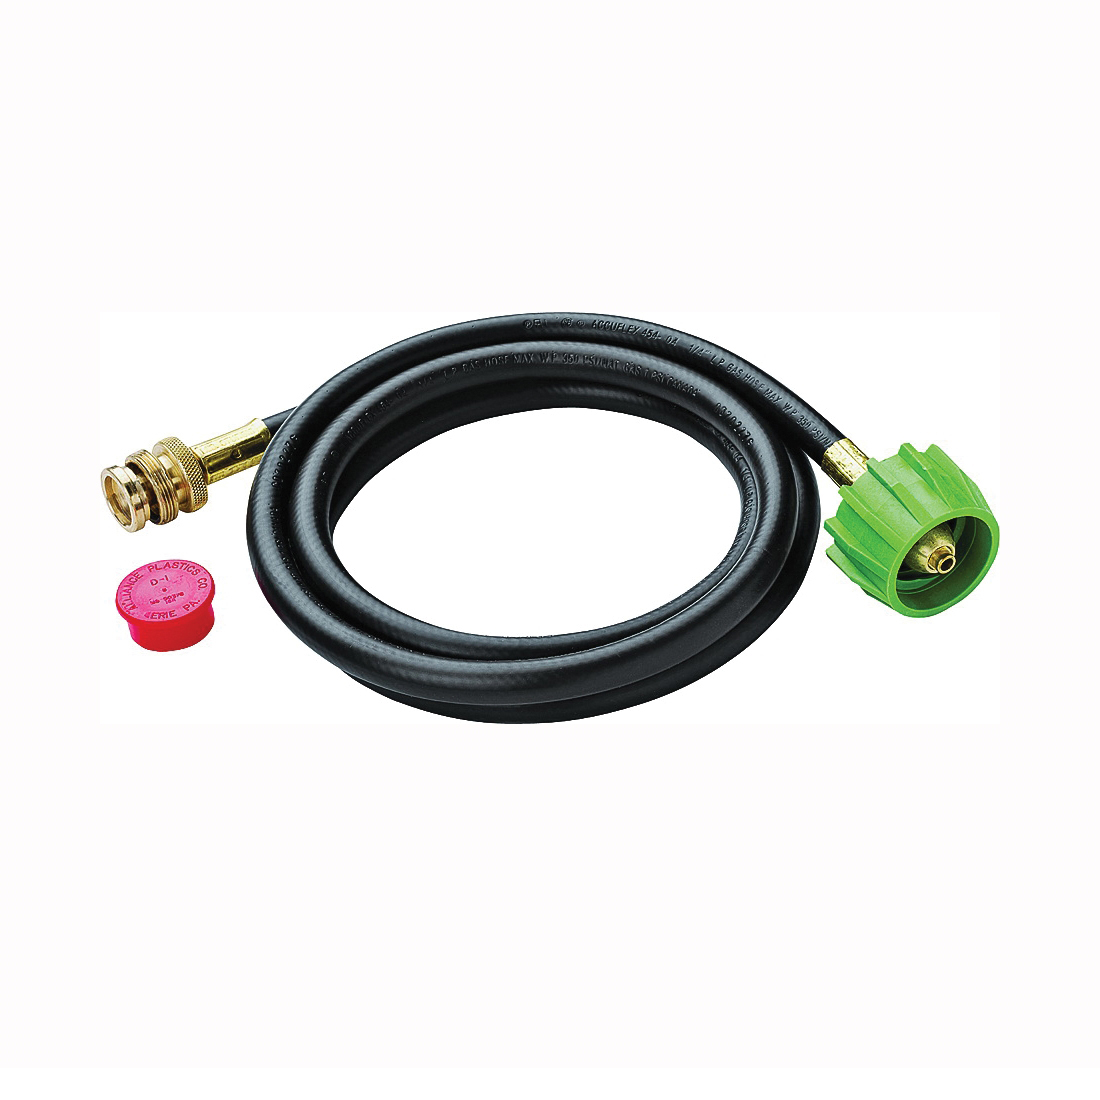 Picture of Weber 6501 Adapter Hose, Brass/Rubber/Stainless Steel, 72 in L